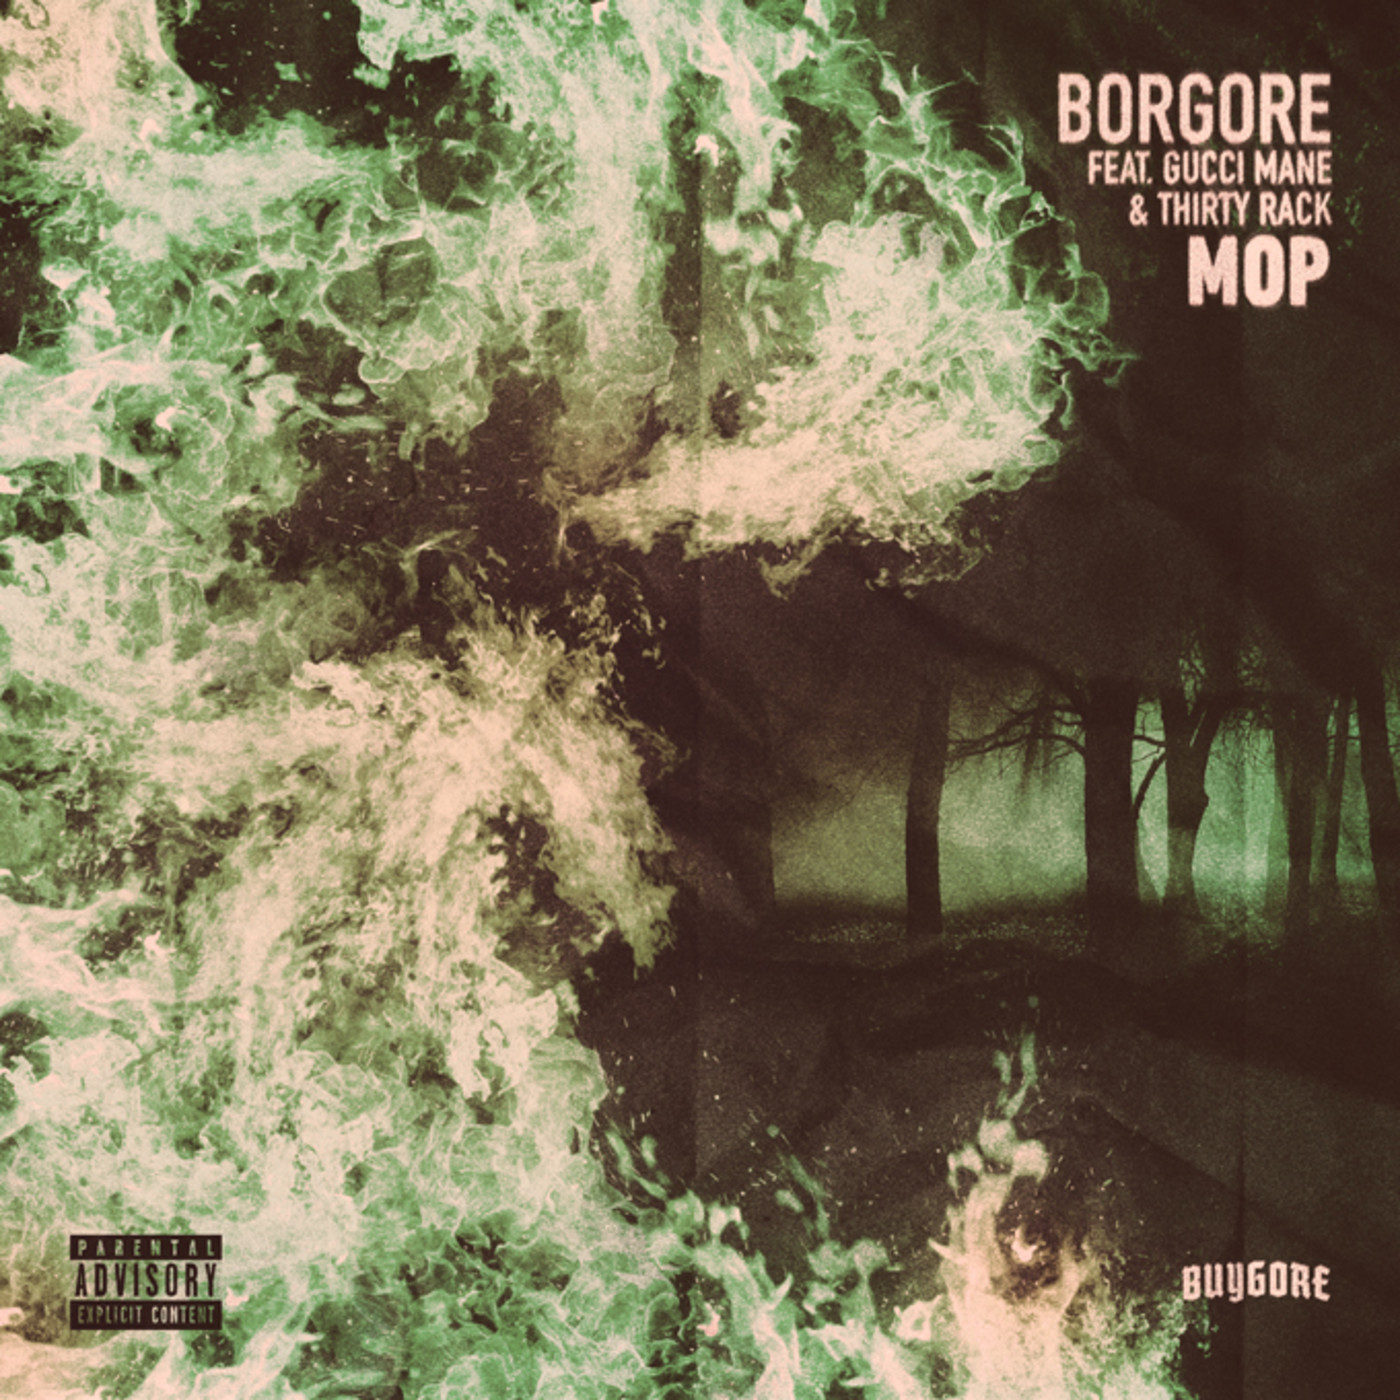 """Borgore ft. Gucci Mane and THIRTY RACK """"MOP"""""""